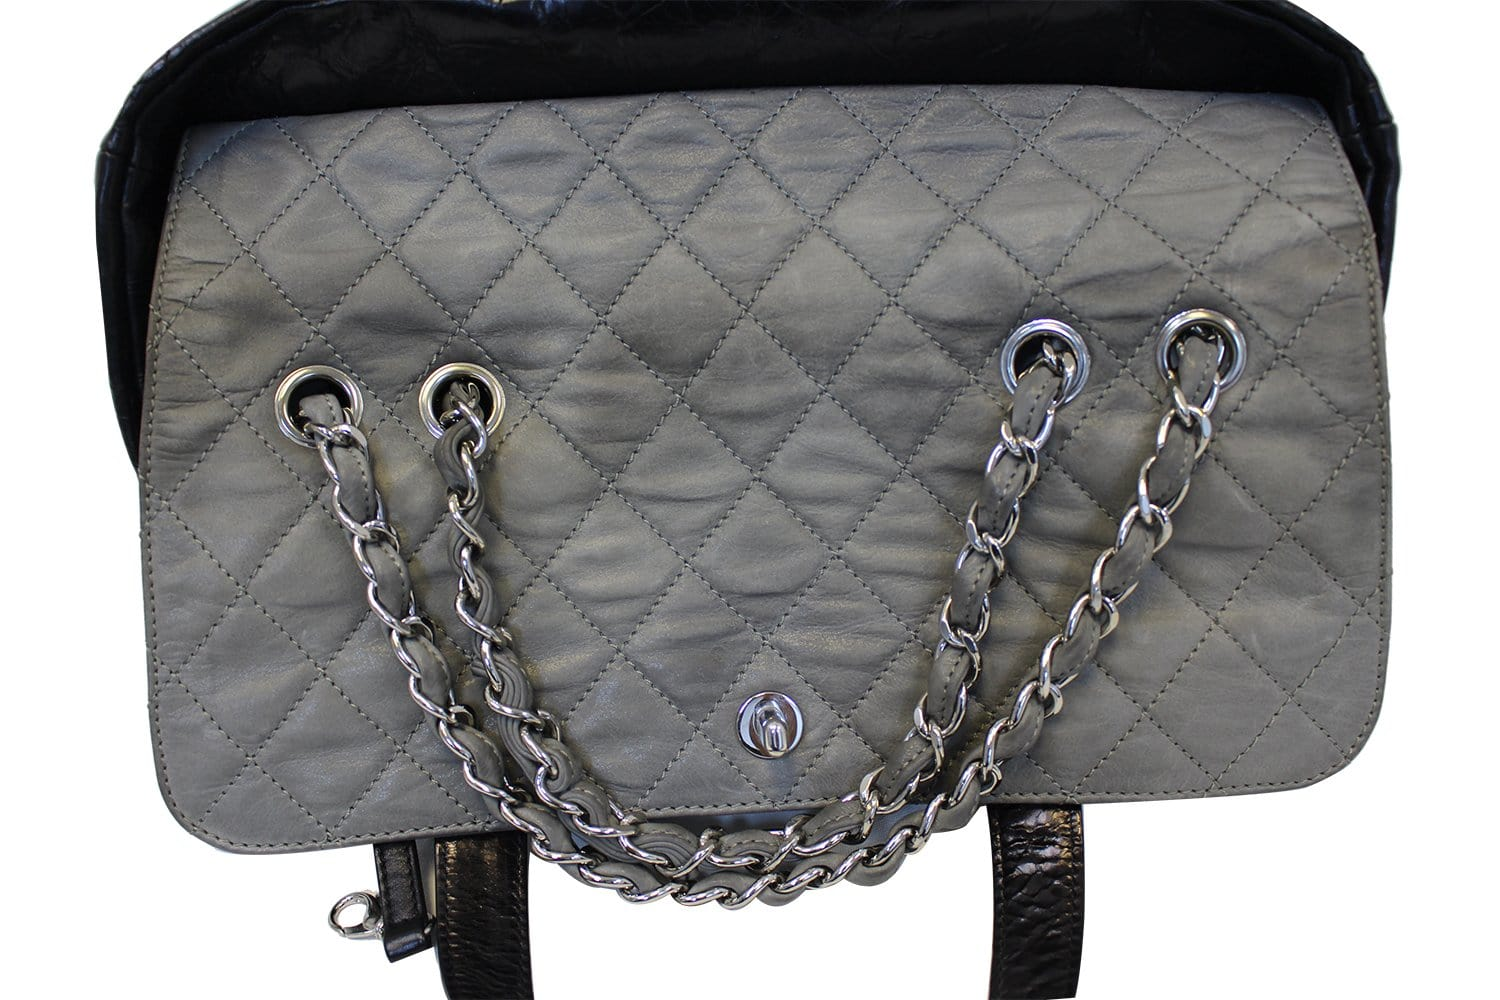 42ba55702c4b CHANEL Black Leather 2 Way Tote Bag